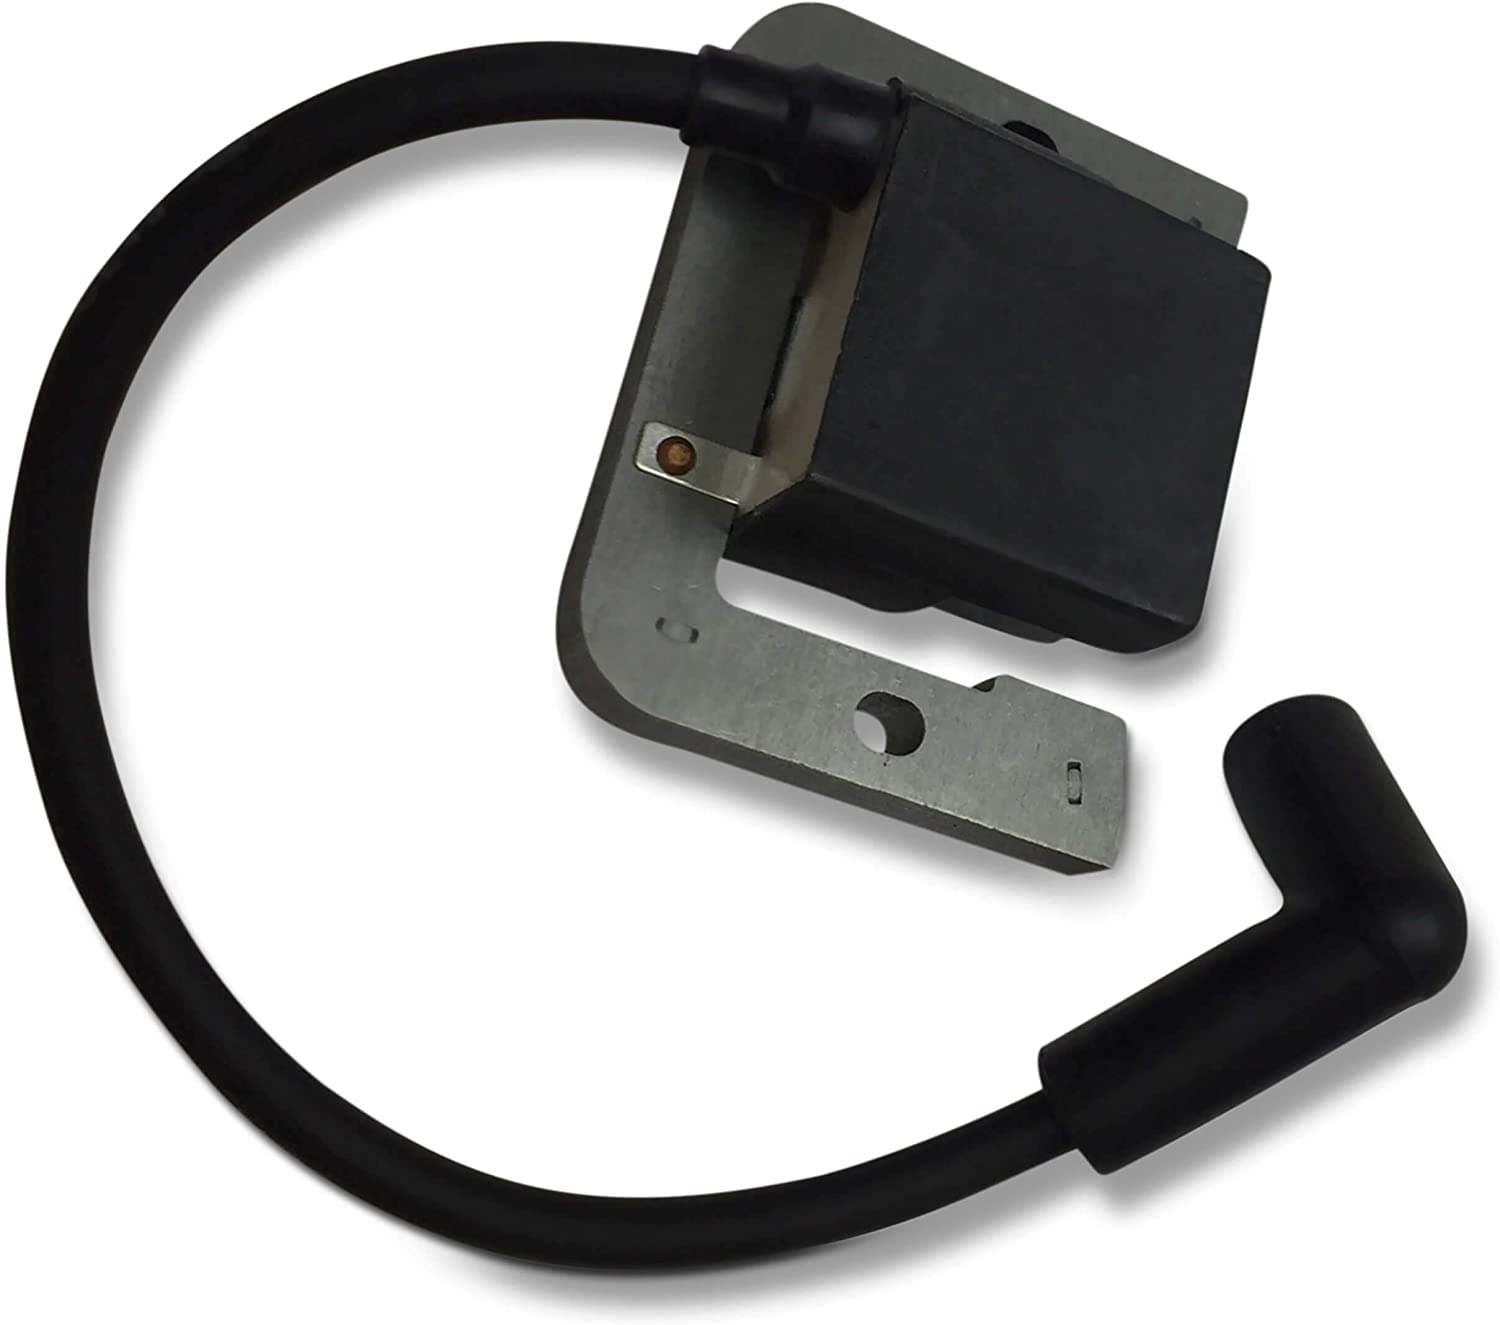 24 584 36-S Ignition Coil for Kohler 24 584 15-S CH18 CH22 CH25 CH730 CH740